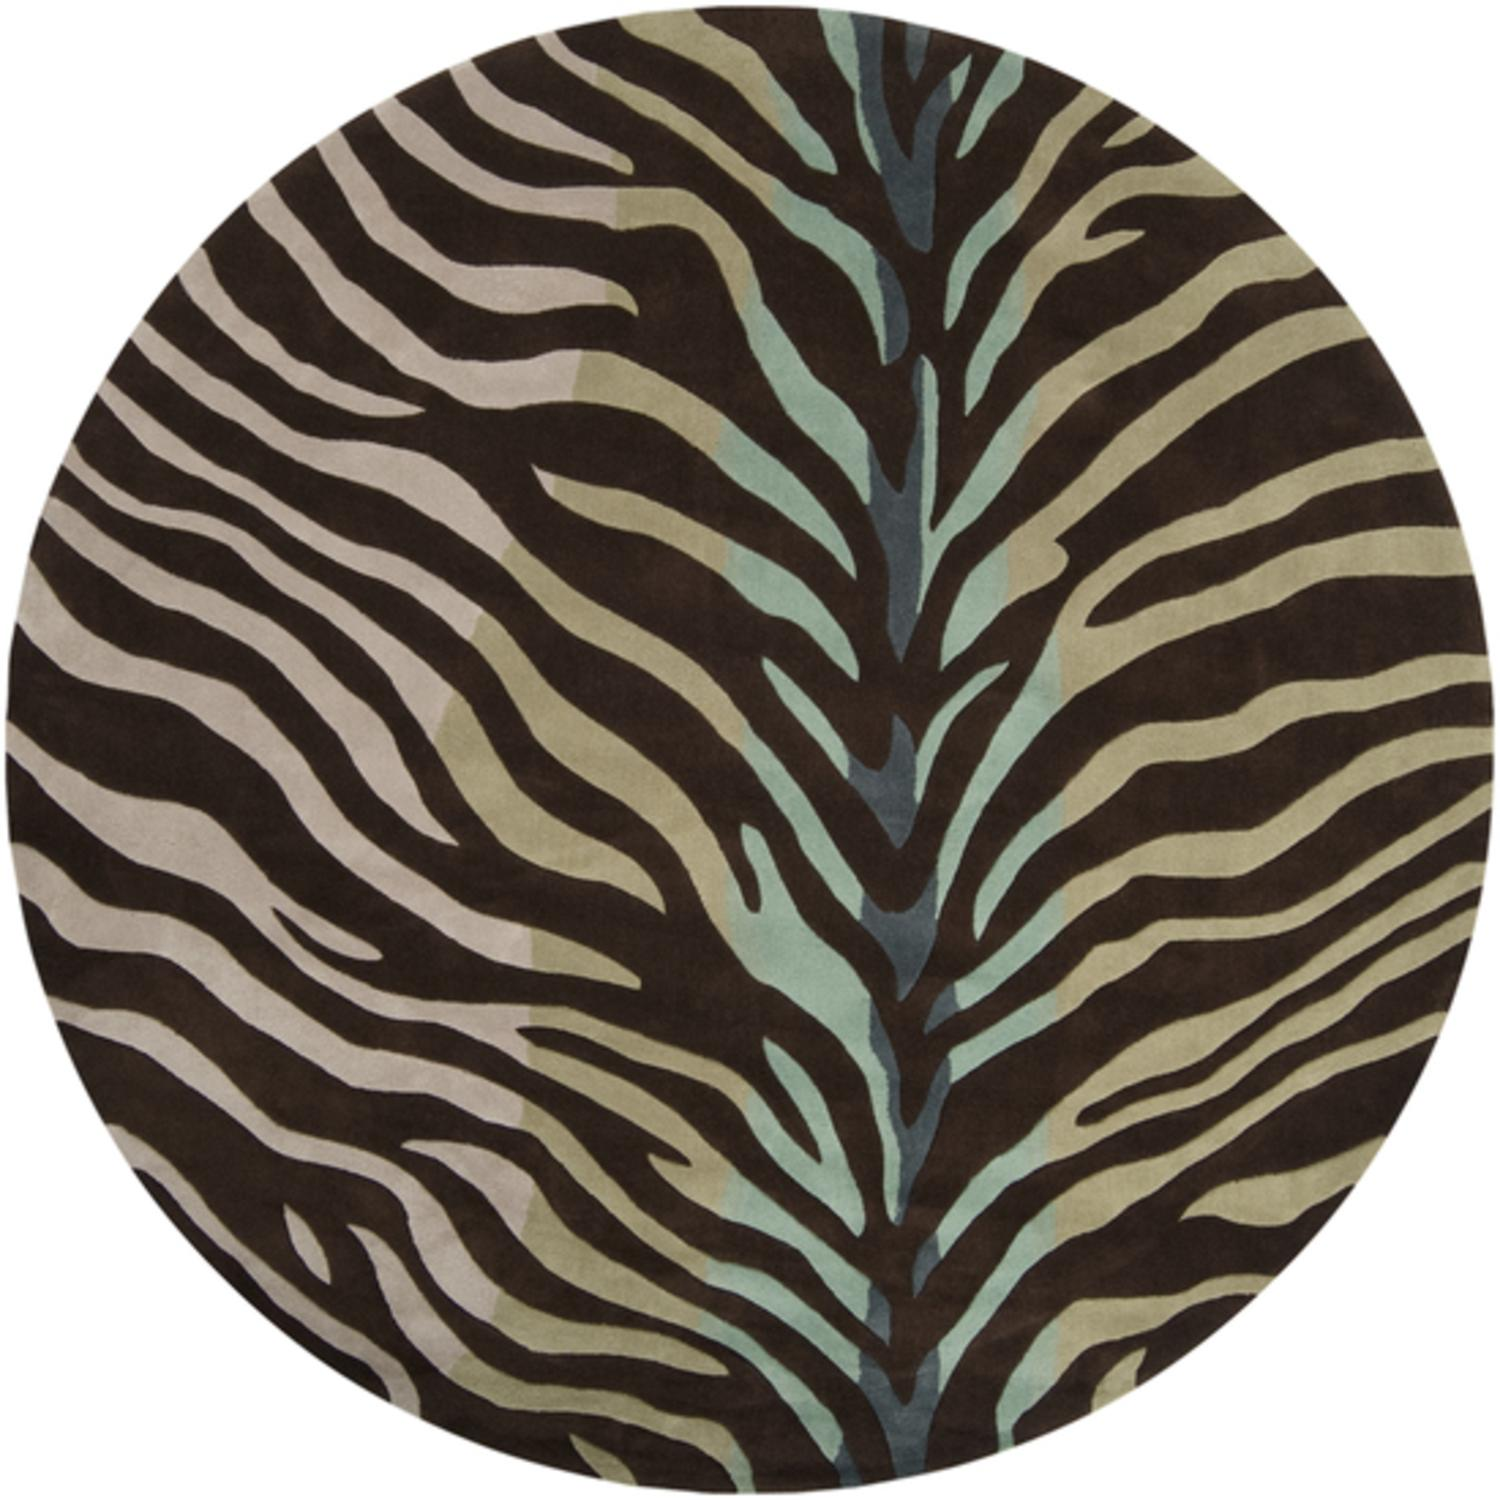 8'  Zebra Chocolate, Sand and Jade Hand Tufted Round Polyester Area Throw Rug